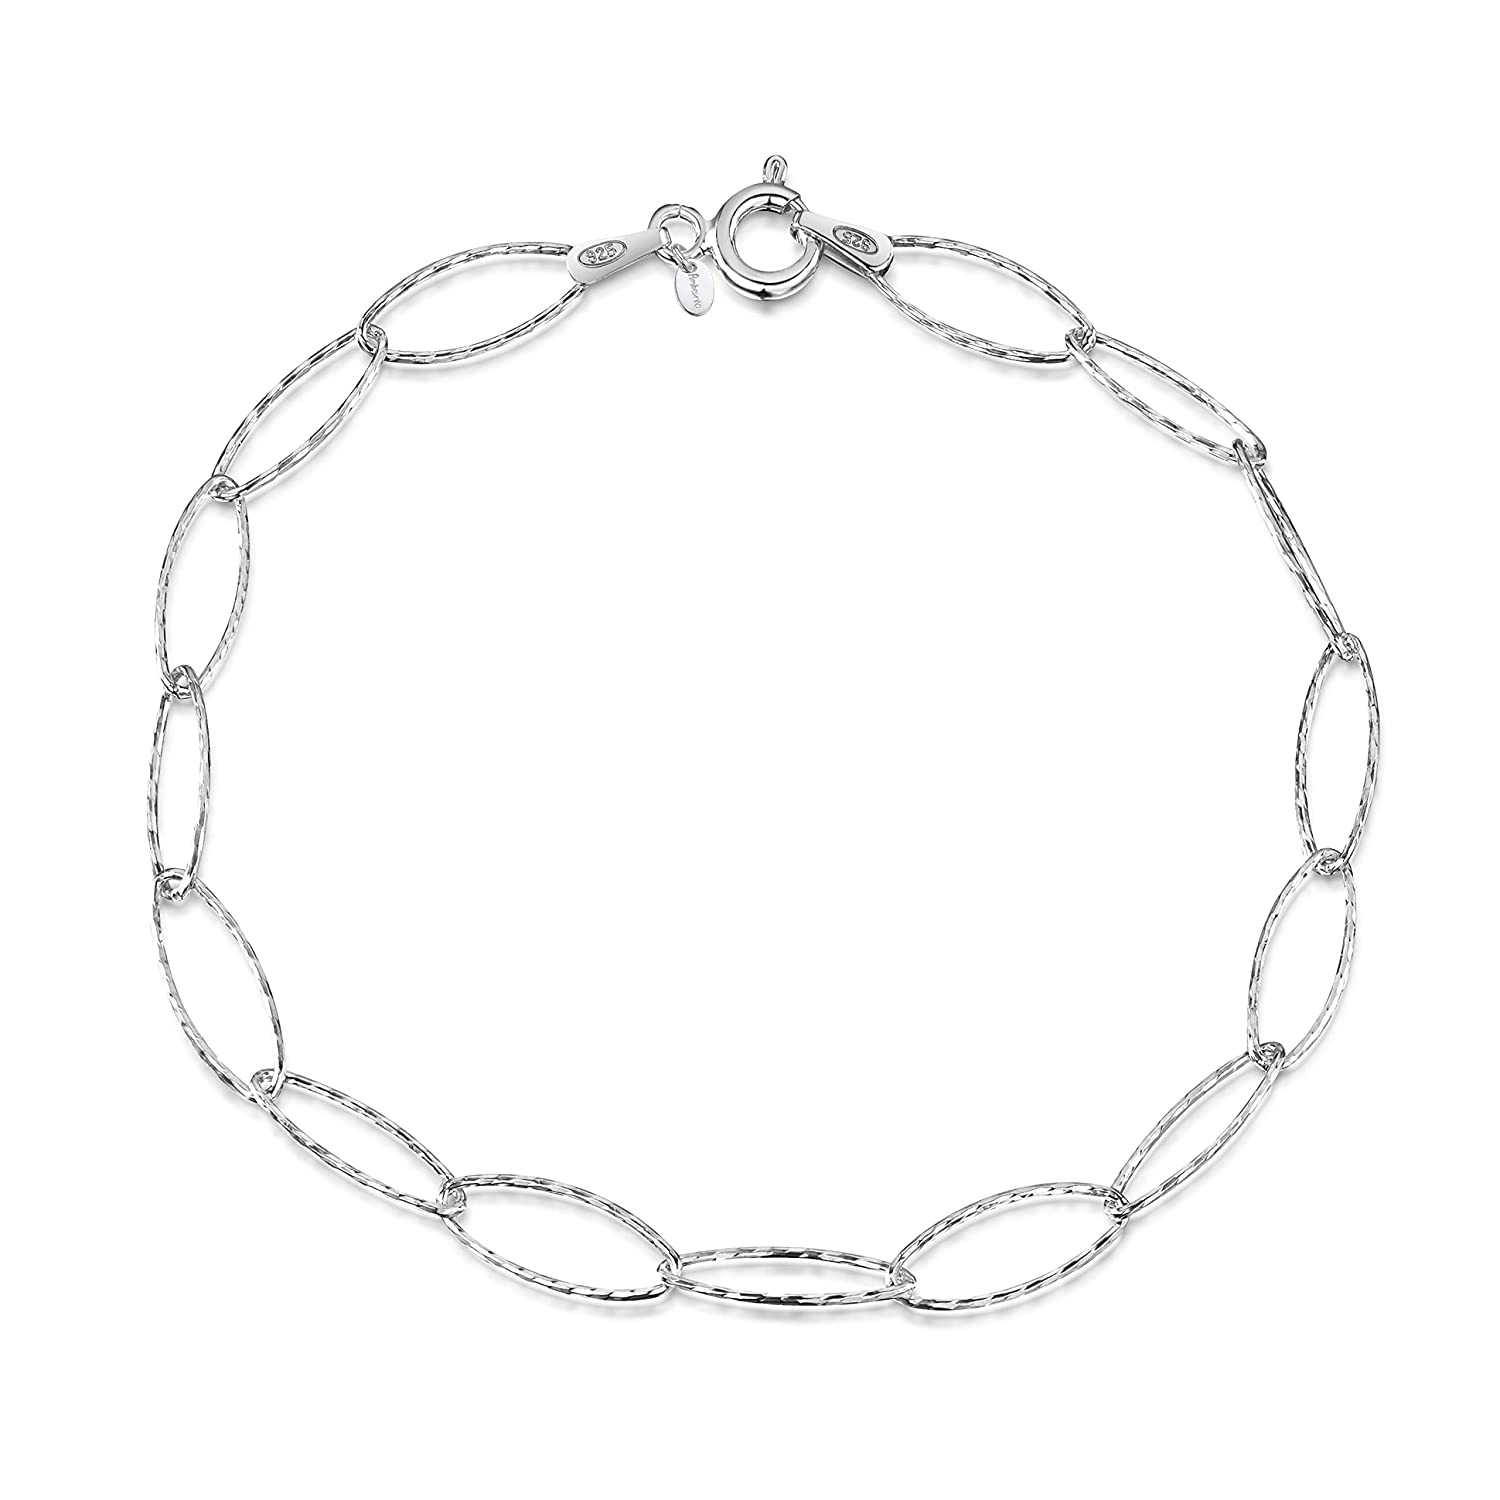 4c50a65d222d4 Amberta 925 Sterling Silver 6.3 mm Oval Cable Chain Charm Bracelet Size 7